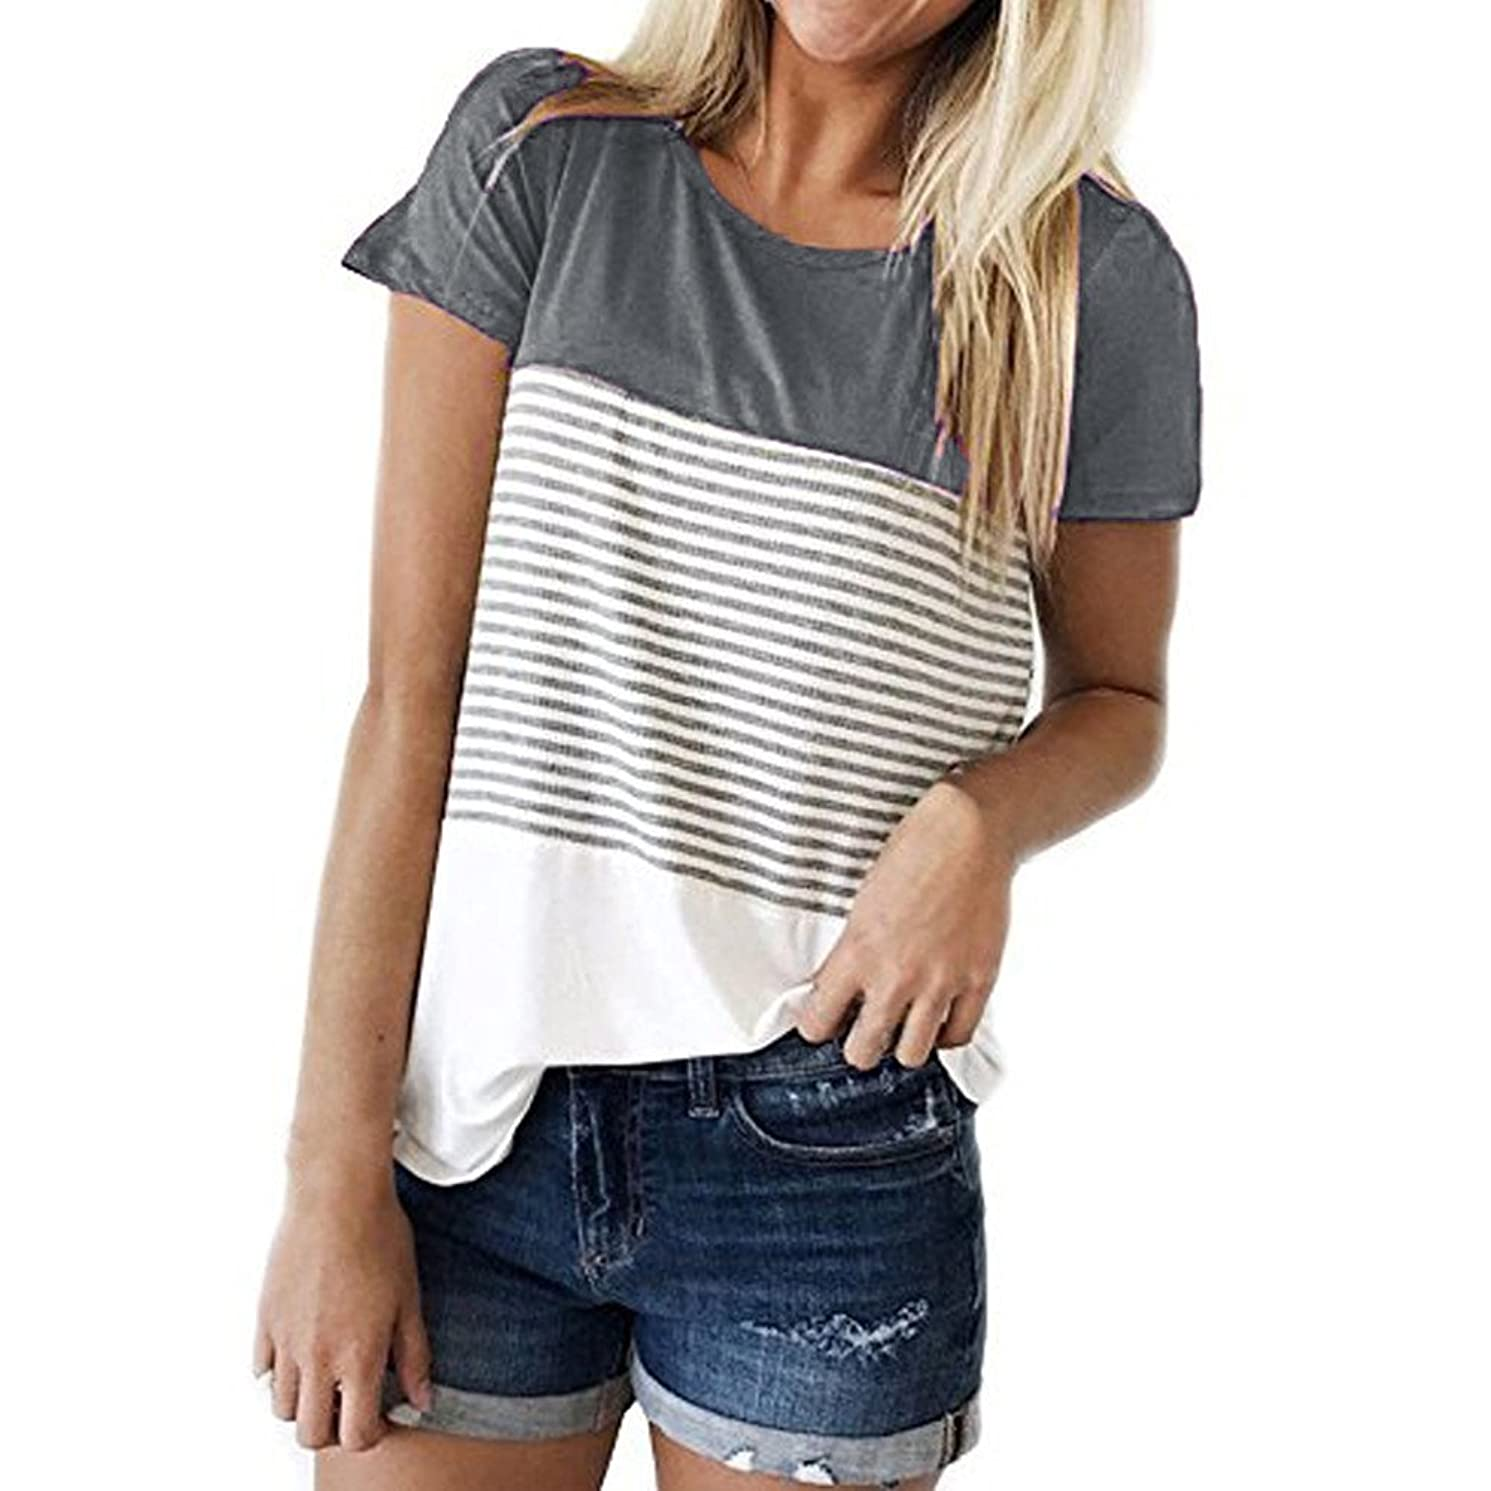 Women Tops Shirts Plus Size Casual Stitching Striped Short Sleeve Blouse Tunic Teen Girls Pullover Tops